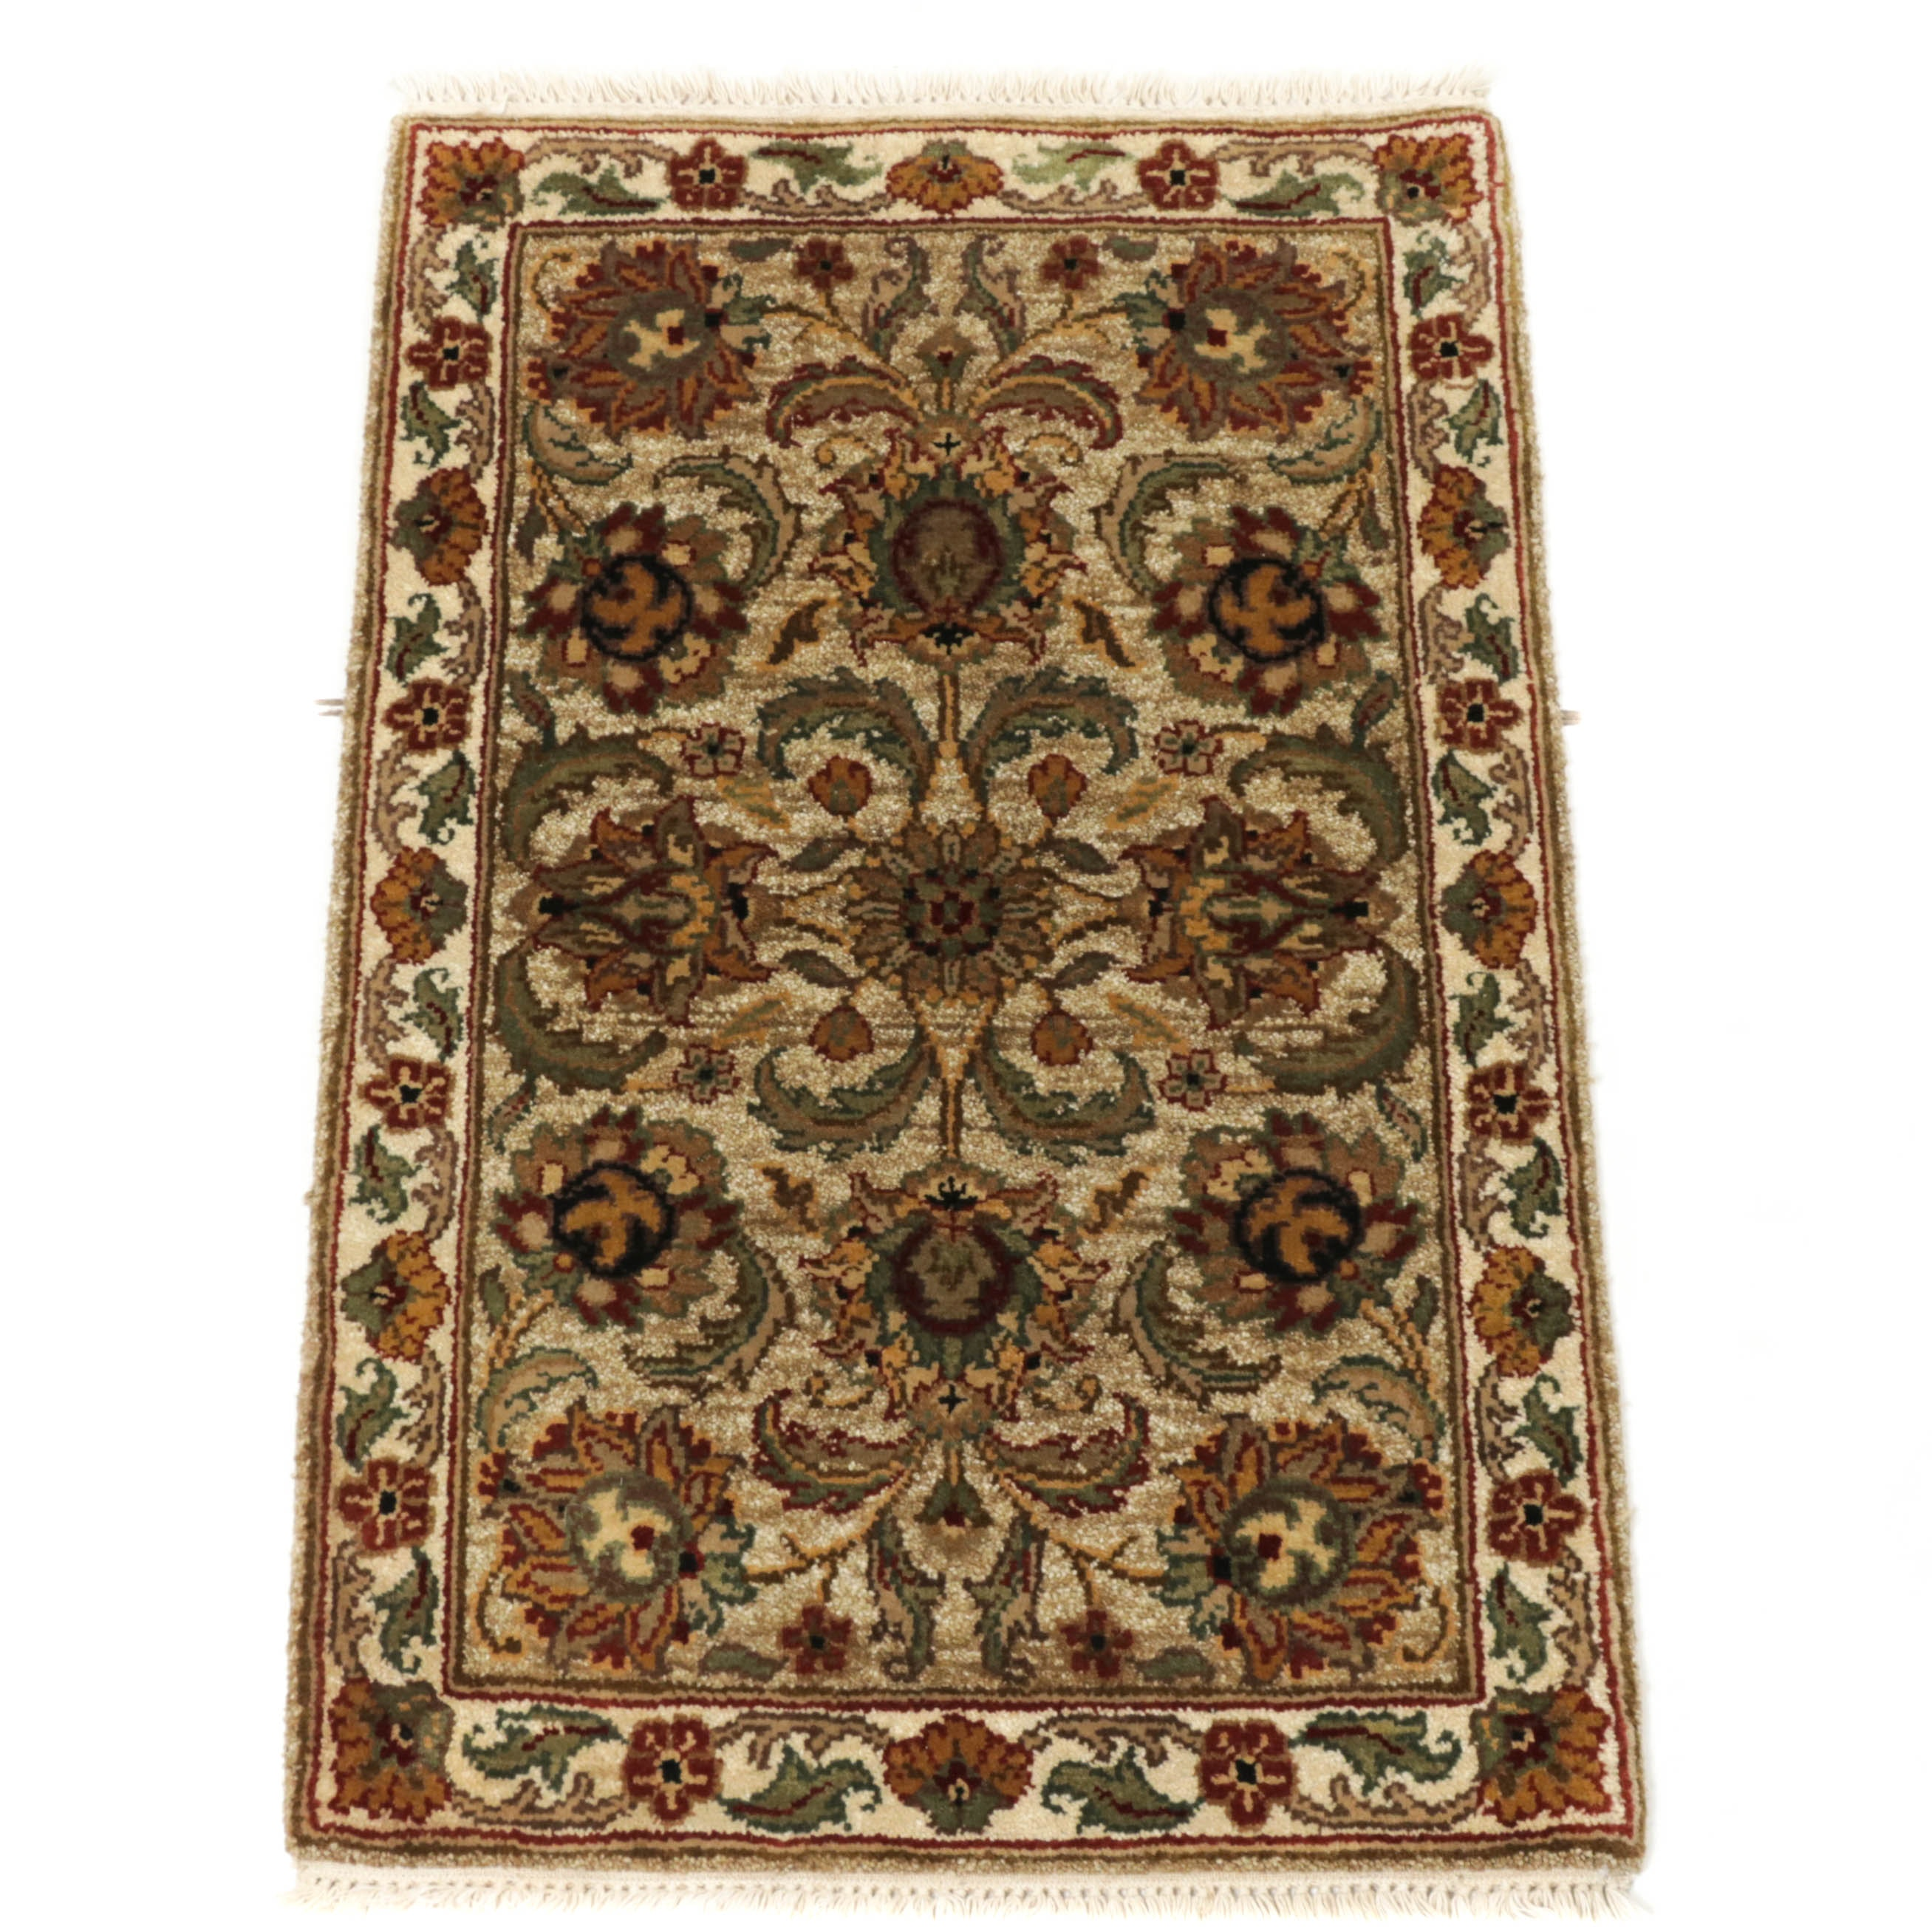 2.1' x 3.3' Hand-Knotted Indo-Persian Tabriz Wool Rug